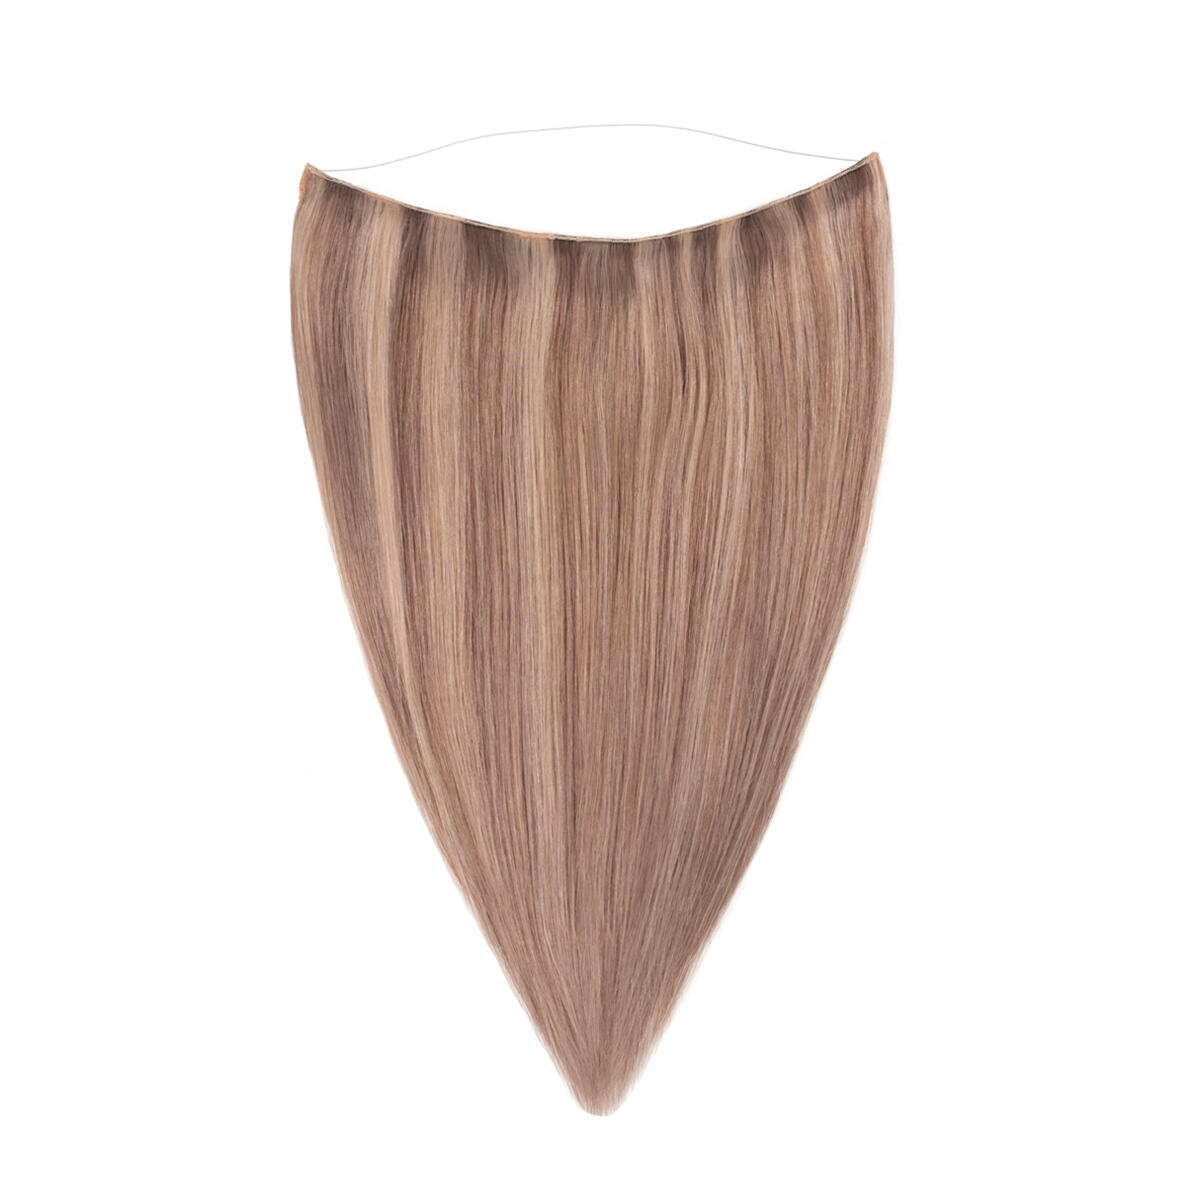 Hairband Original M7.1/10.8 Natural Ash Blonde Mix 45 cm